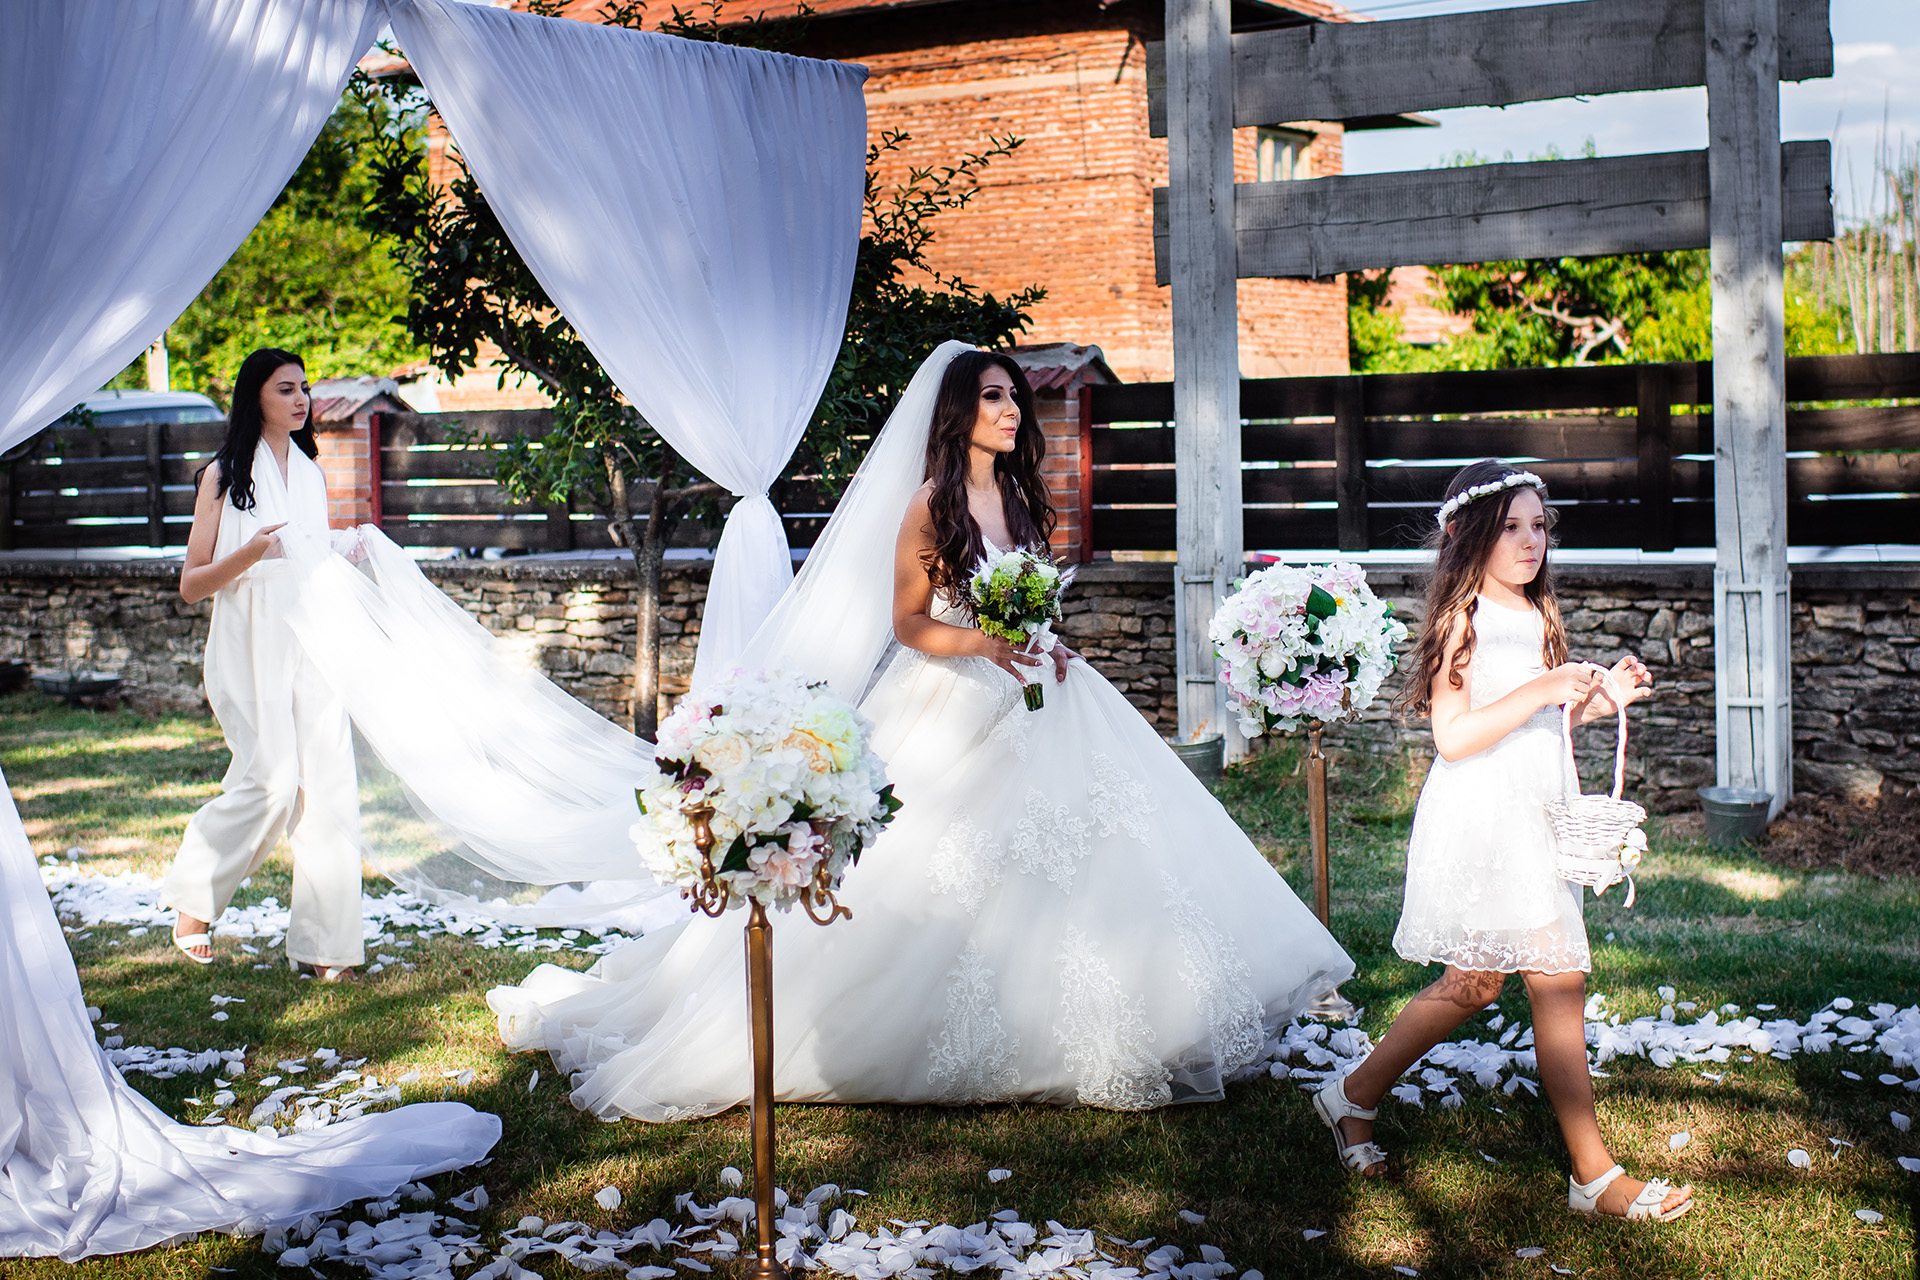 Bulgaria Elopement Photos | The bride comes walking down the aisle